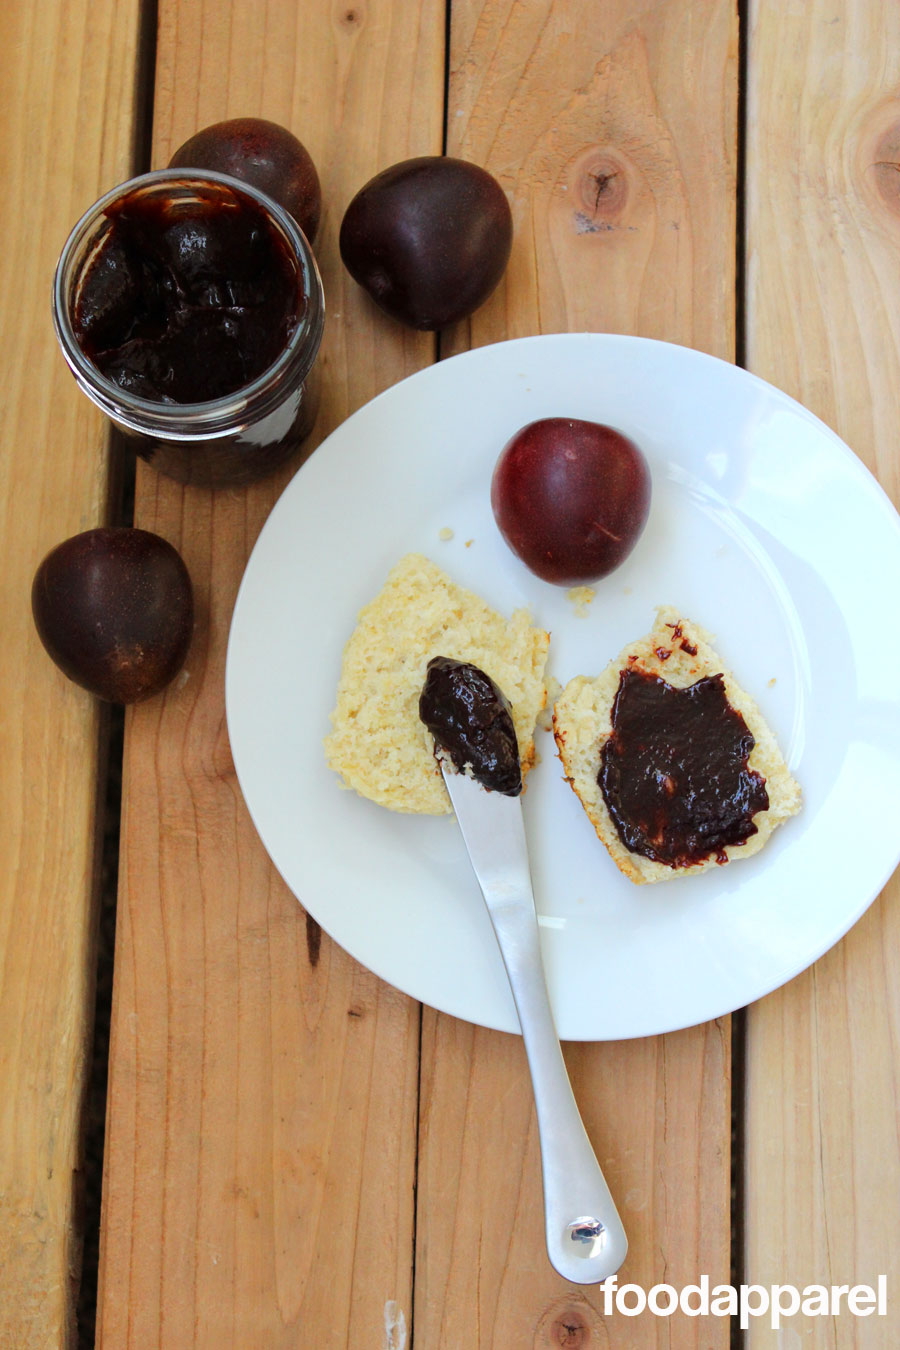 Overnight Crockpot Plum Butter at FoodApparel.com. Sit it and forget it overnight and wake up to a house full of tangy plum aroma!